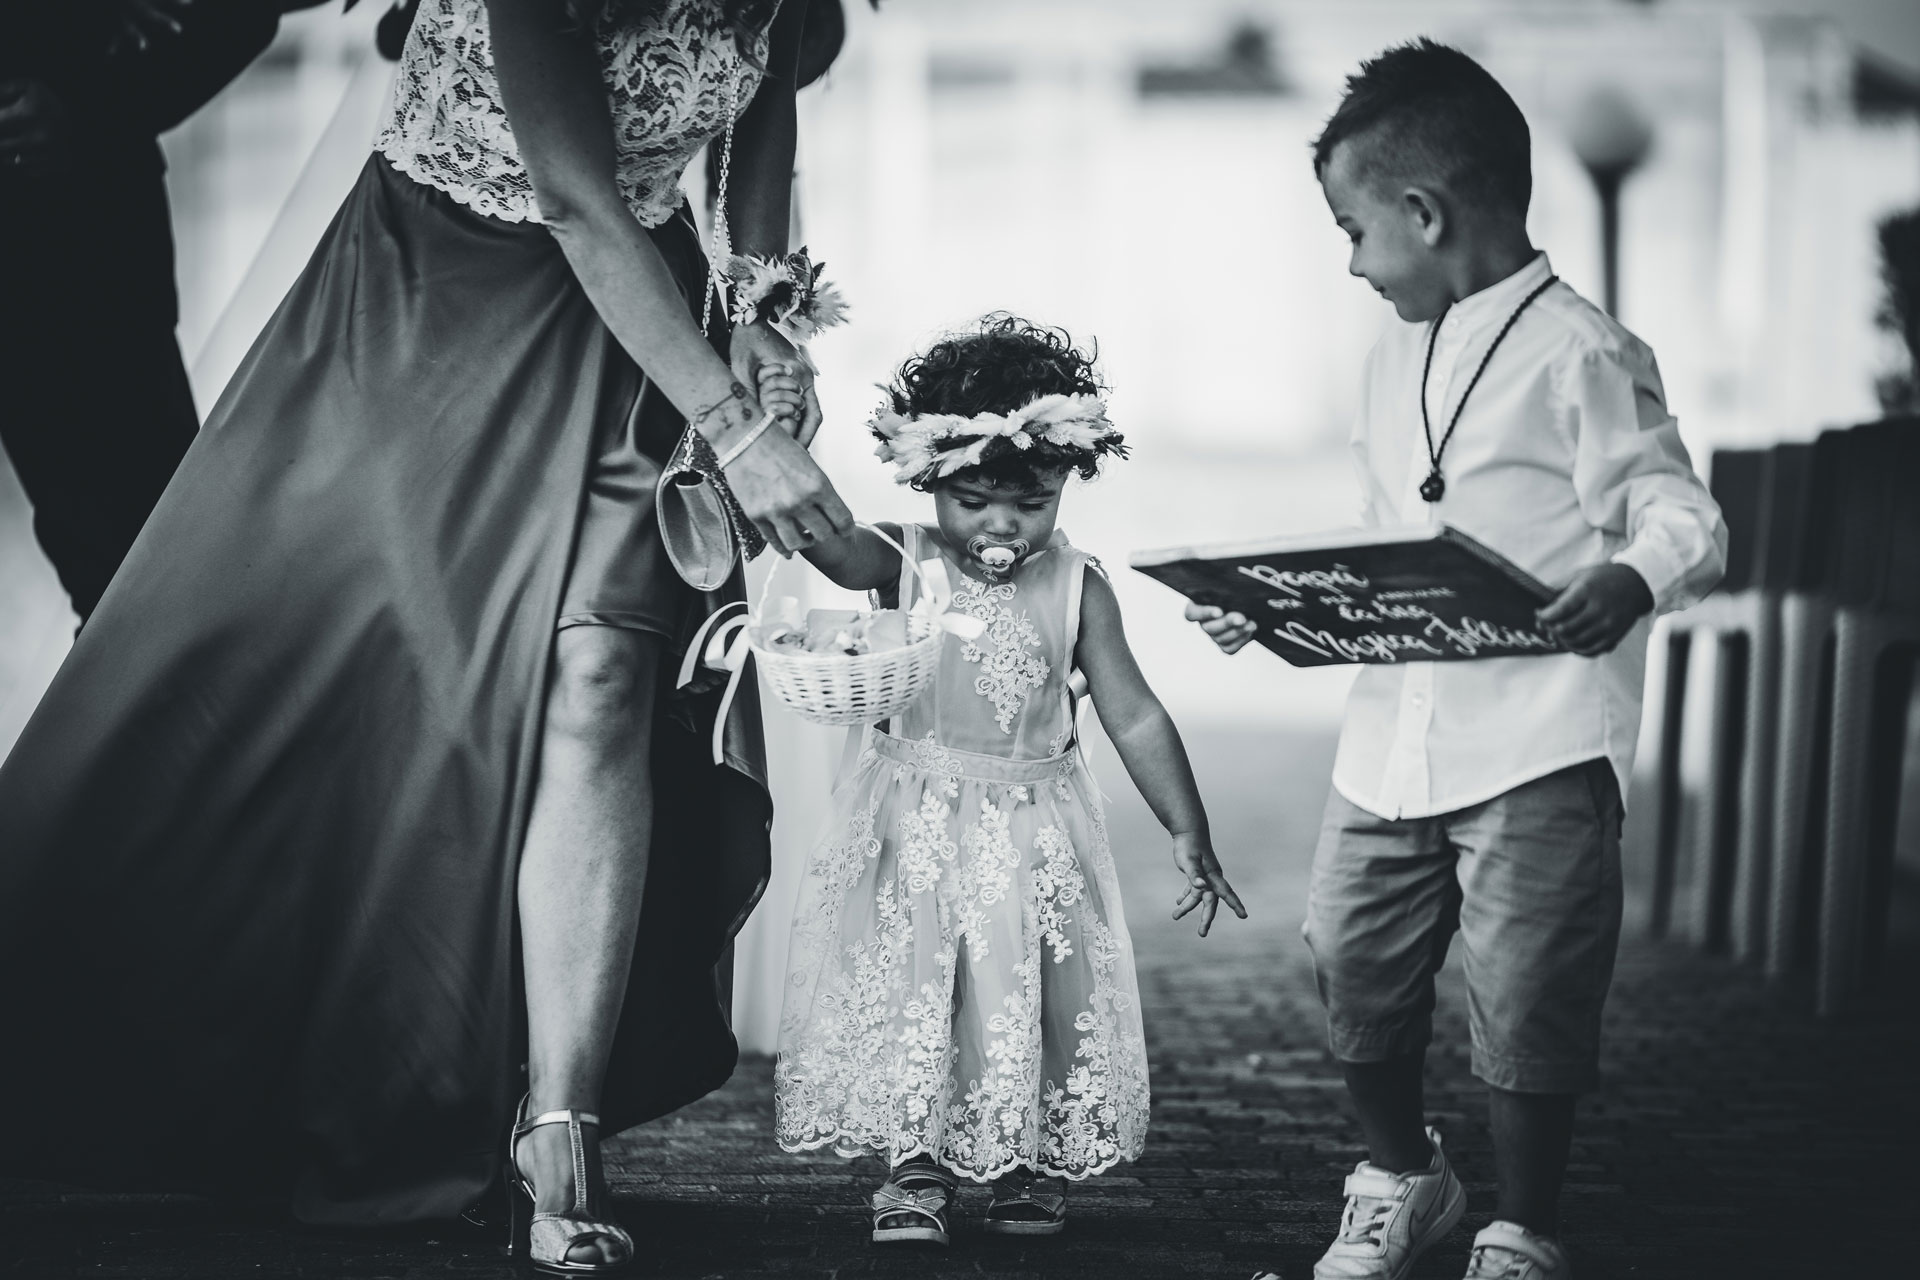 Italy Wedding Photography from Chioggia, IT | Kids in formal wear and comforted by a pacifier